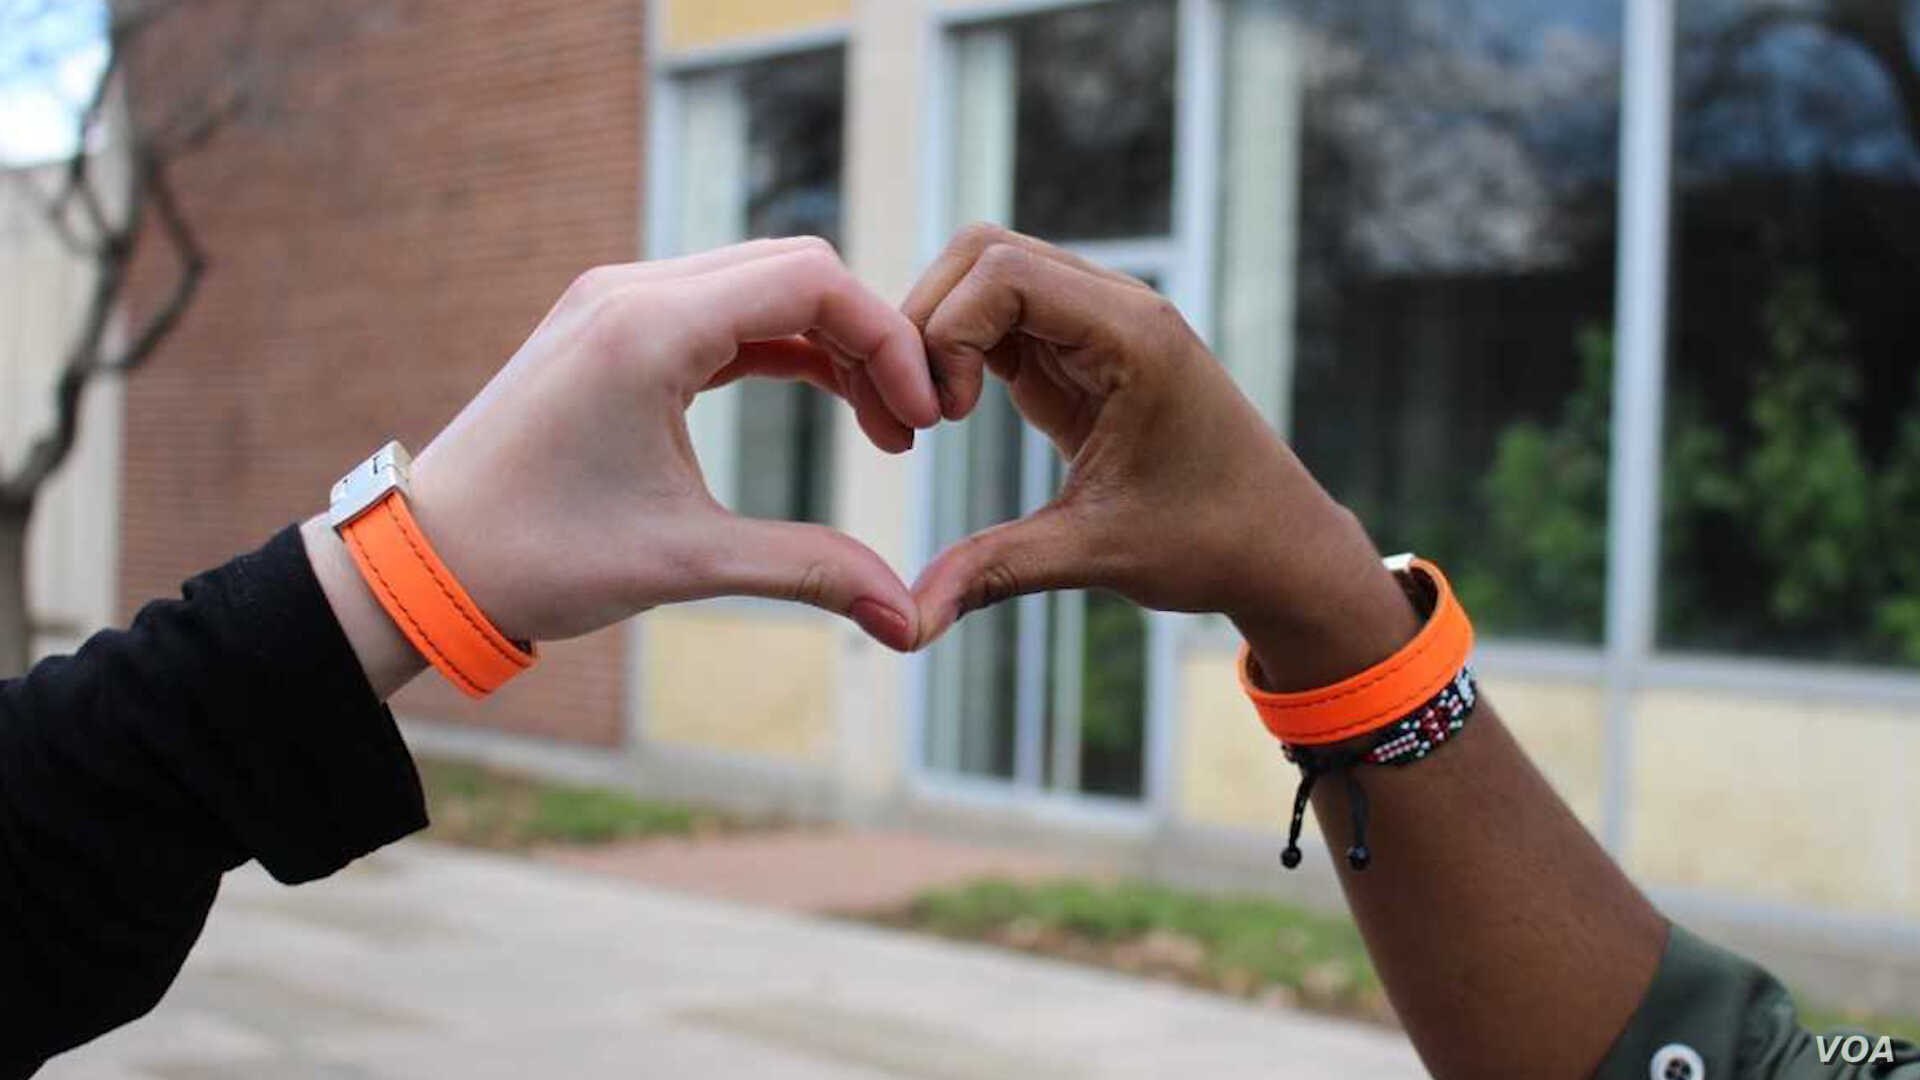 """Mohamed Malim calls the bracelets he designed embracelets because he says people need to """"embrace"""" refugees and the contributions they make."""